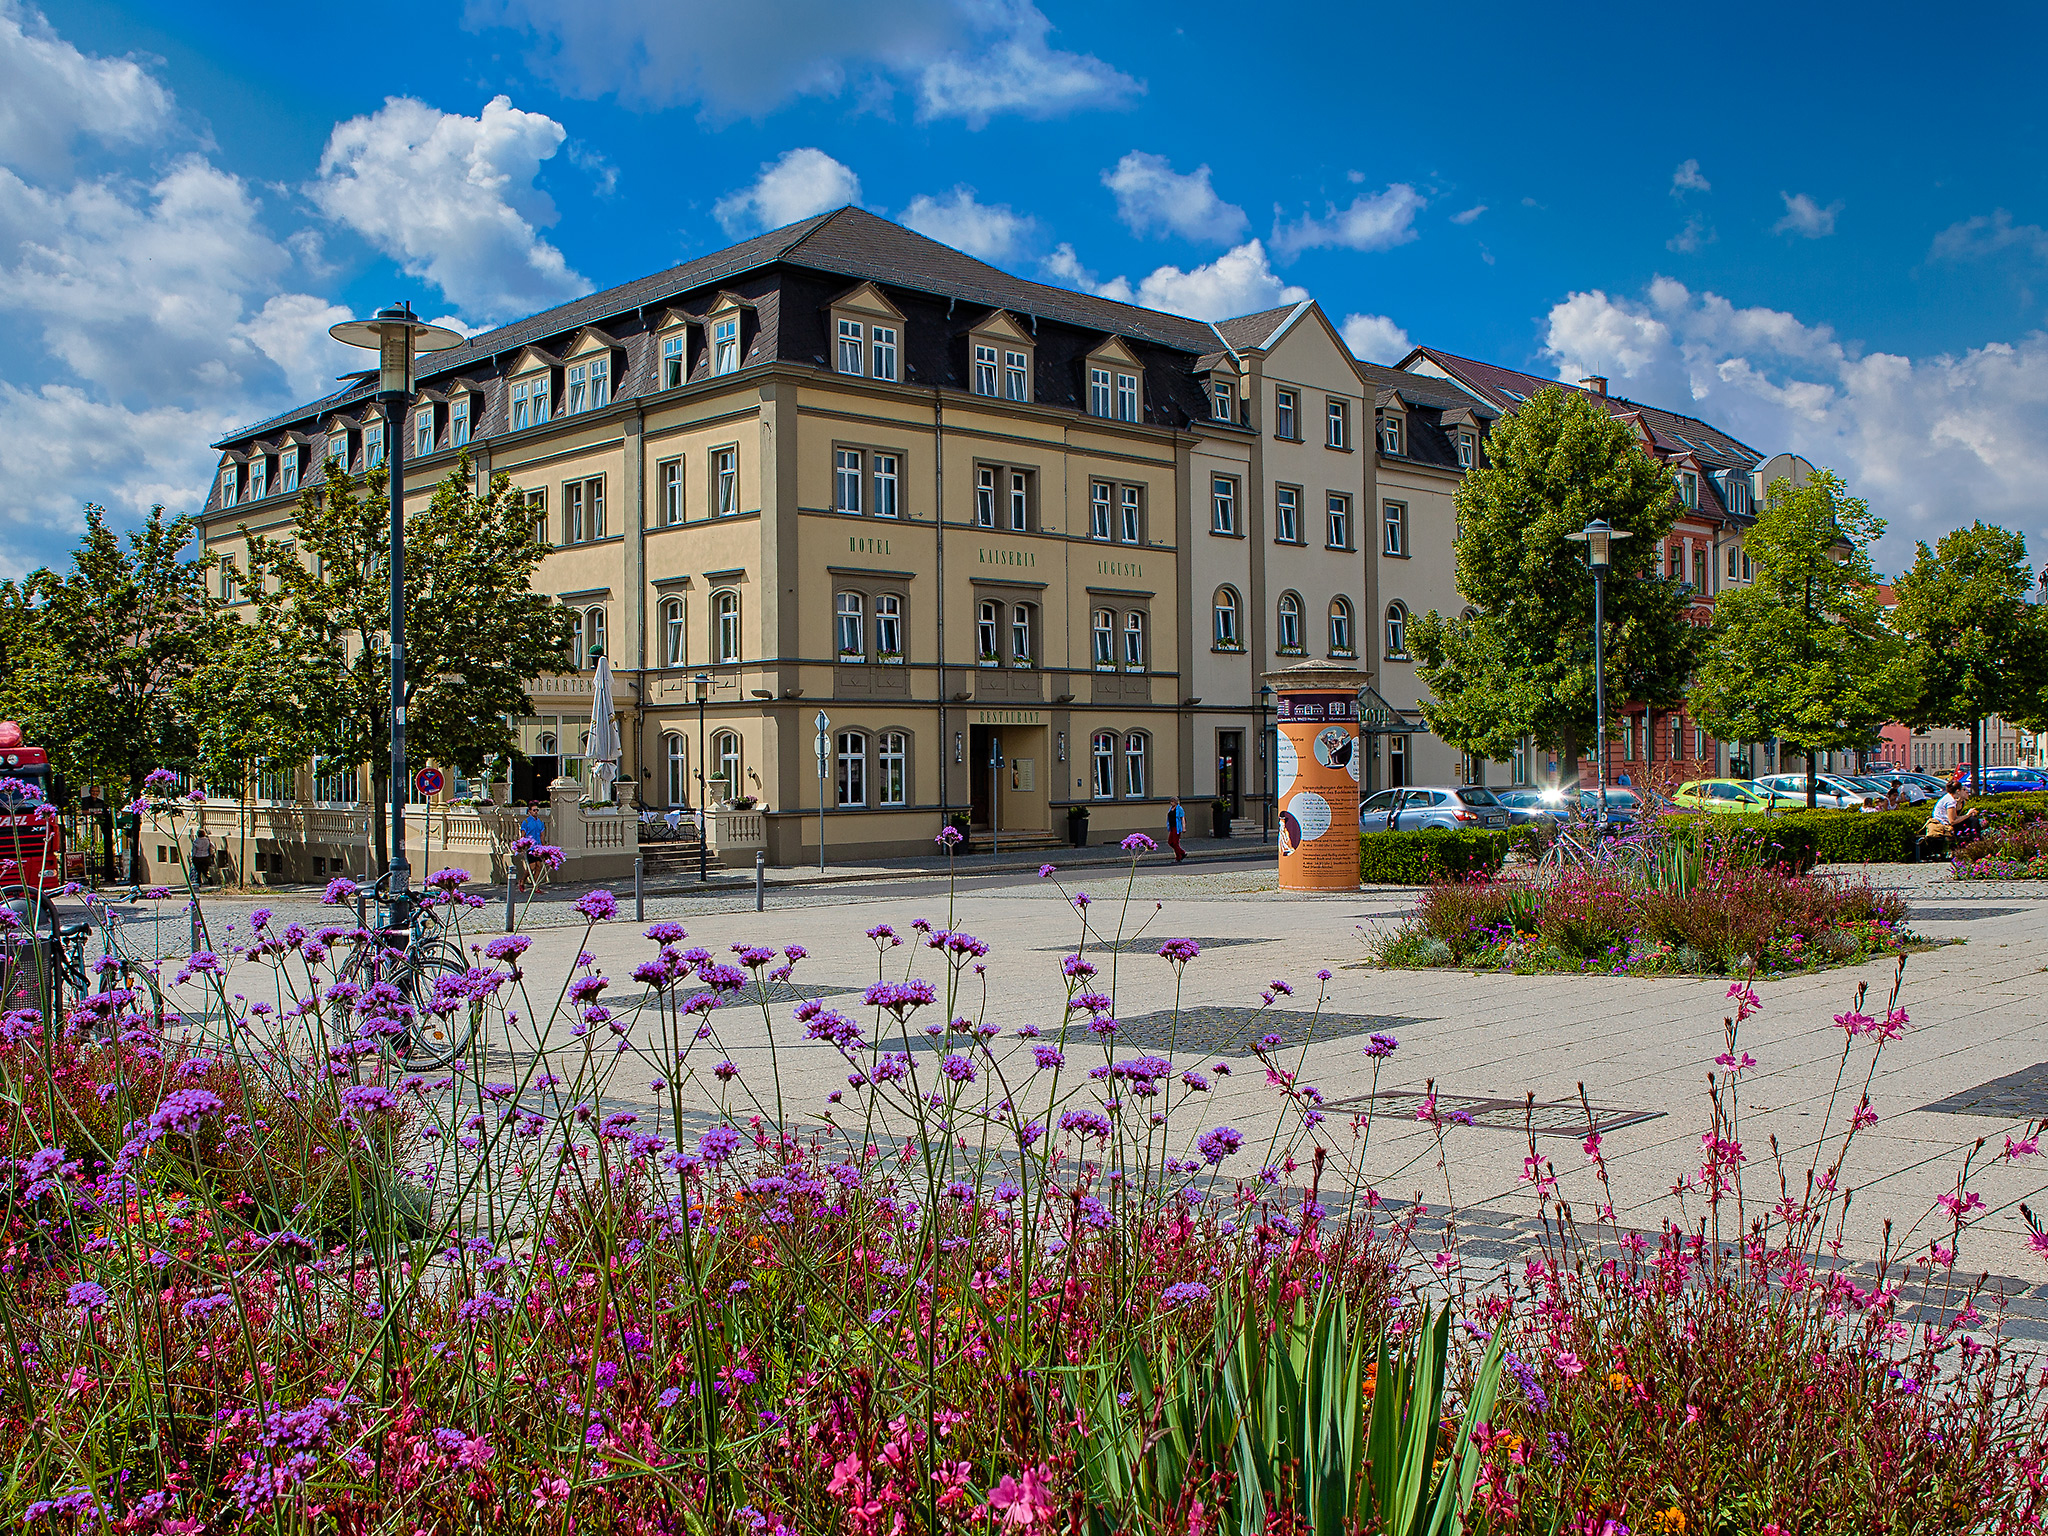 Our hotel is centrally located on August-Baudert-Platz.